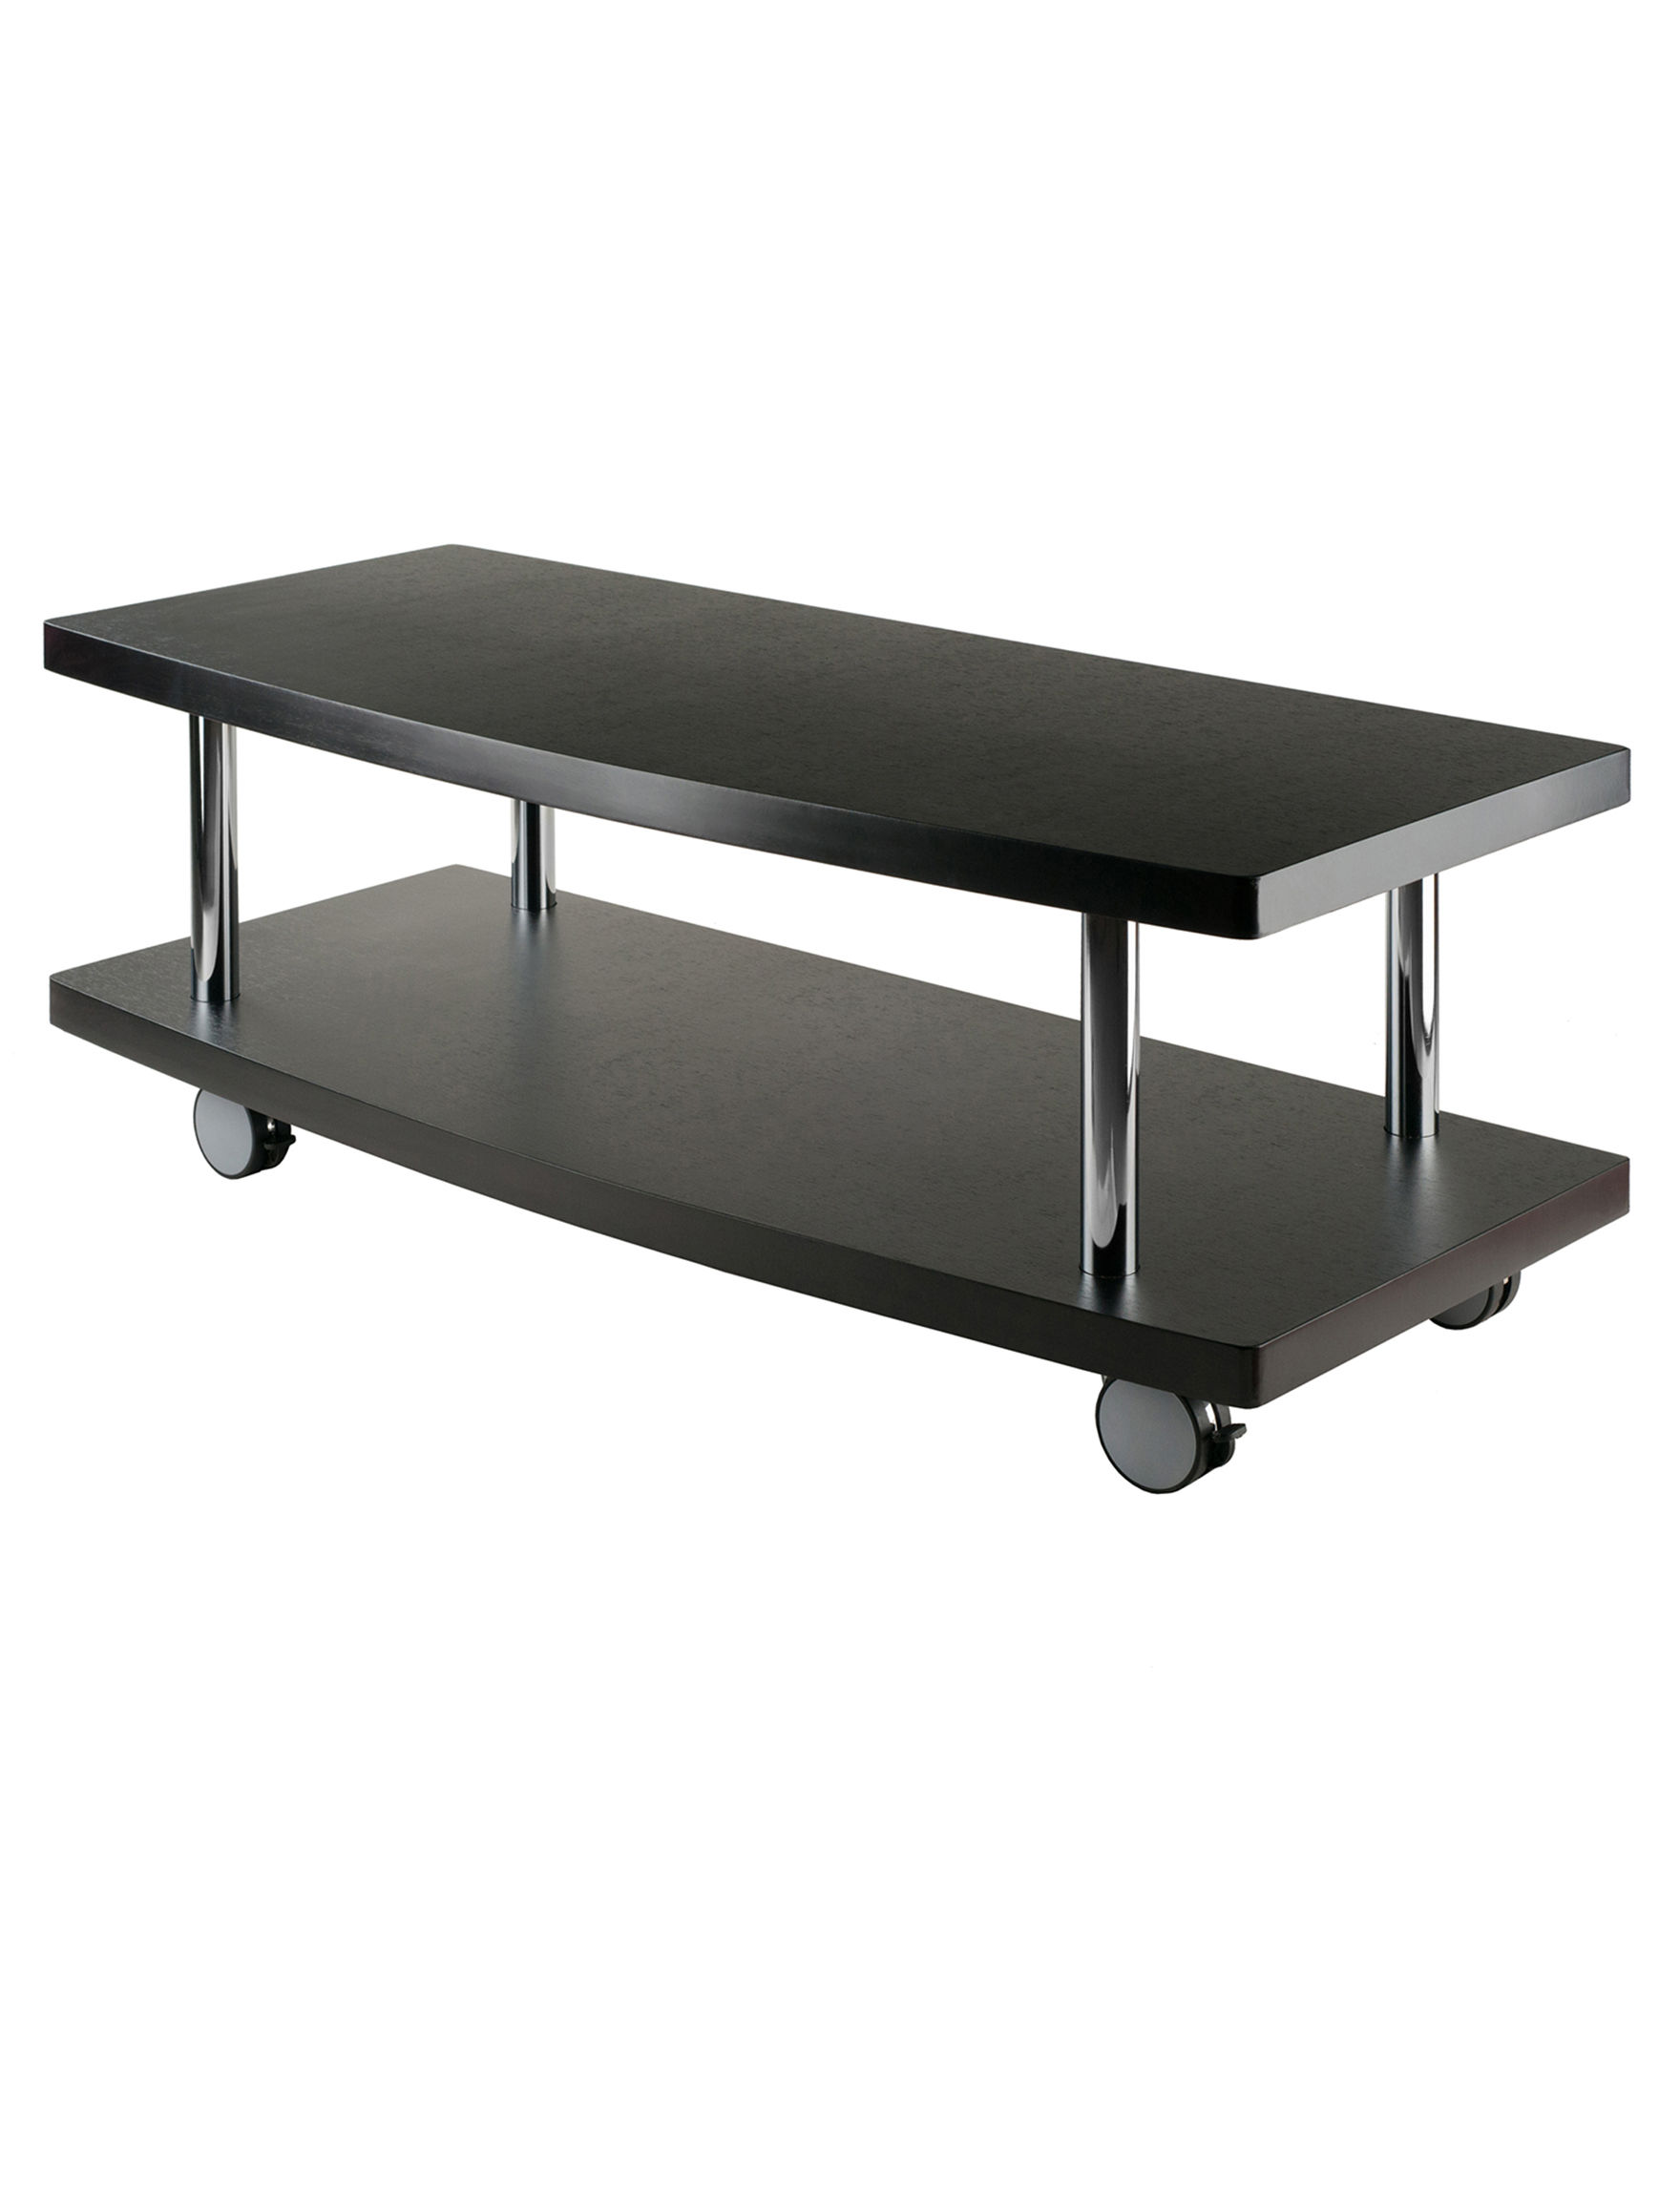 Winsome Espresso TV Stands & Entertainment Centers Living Room Furniture